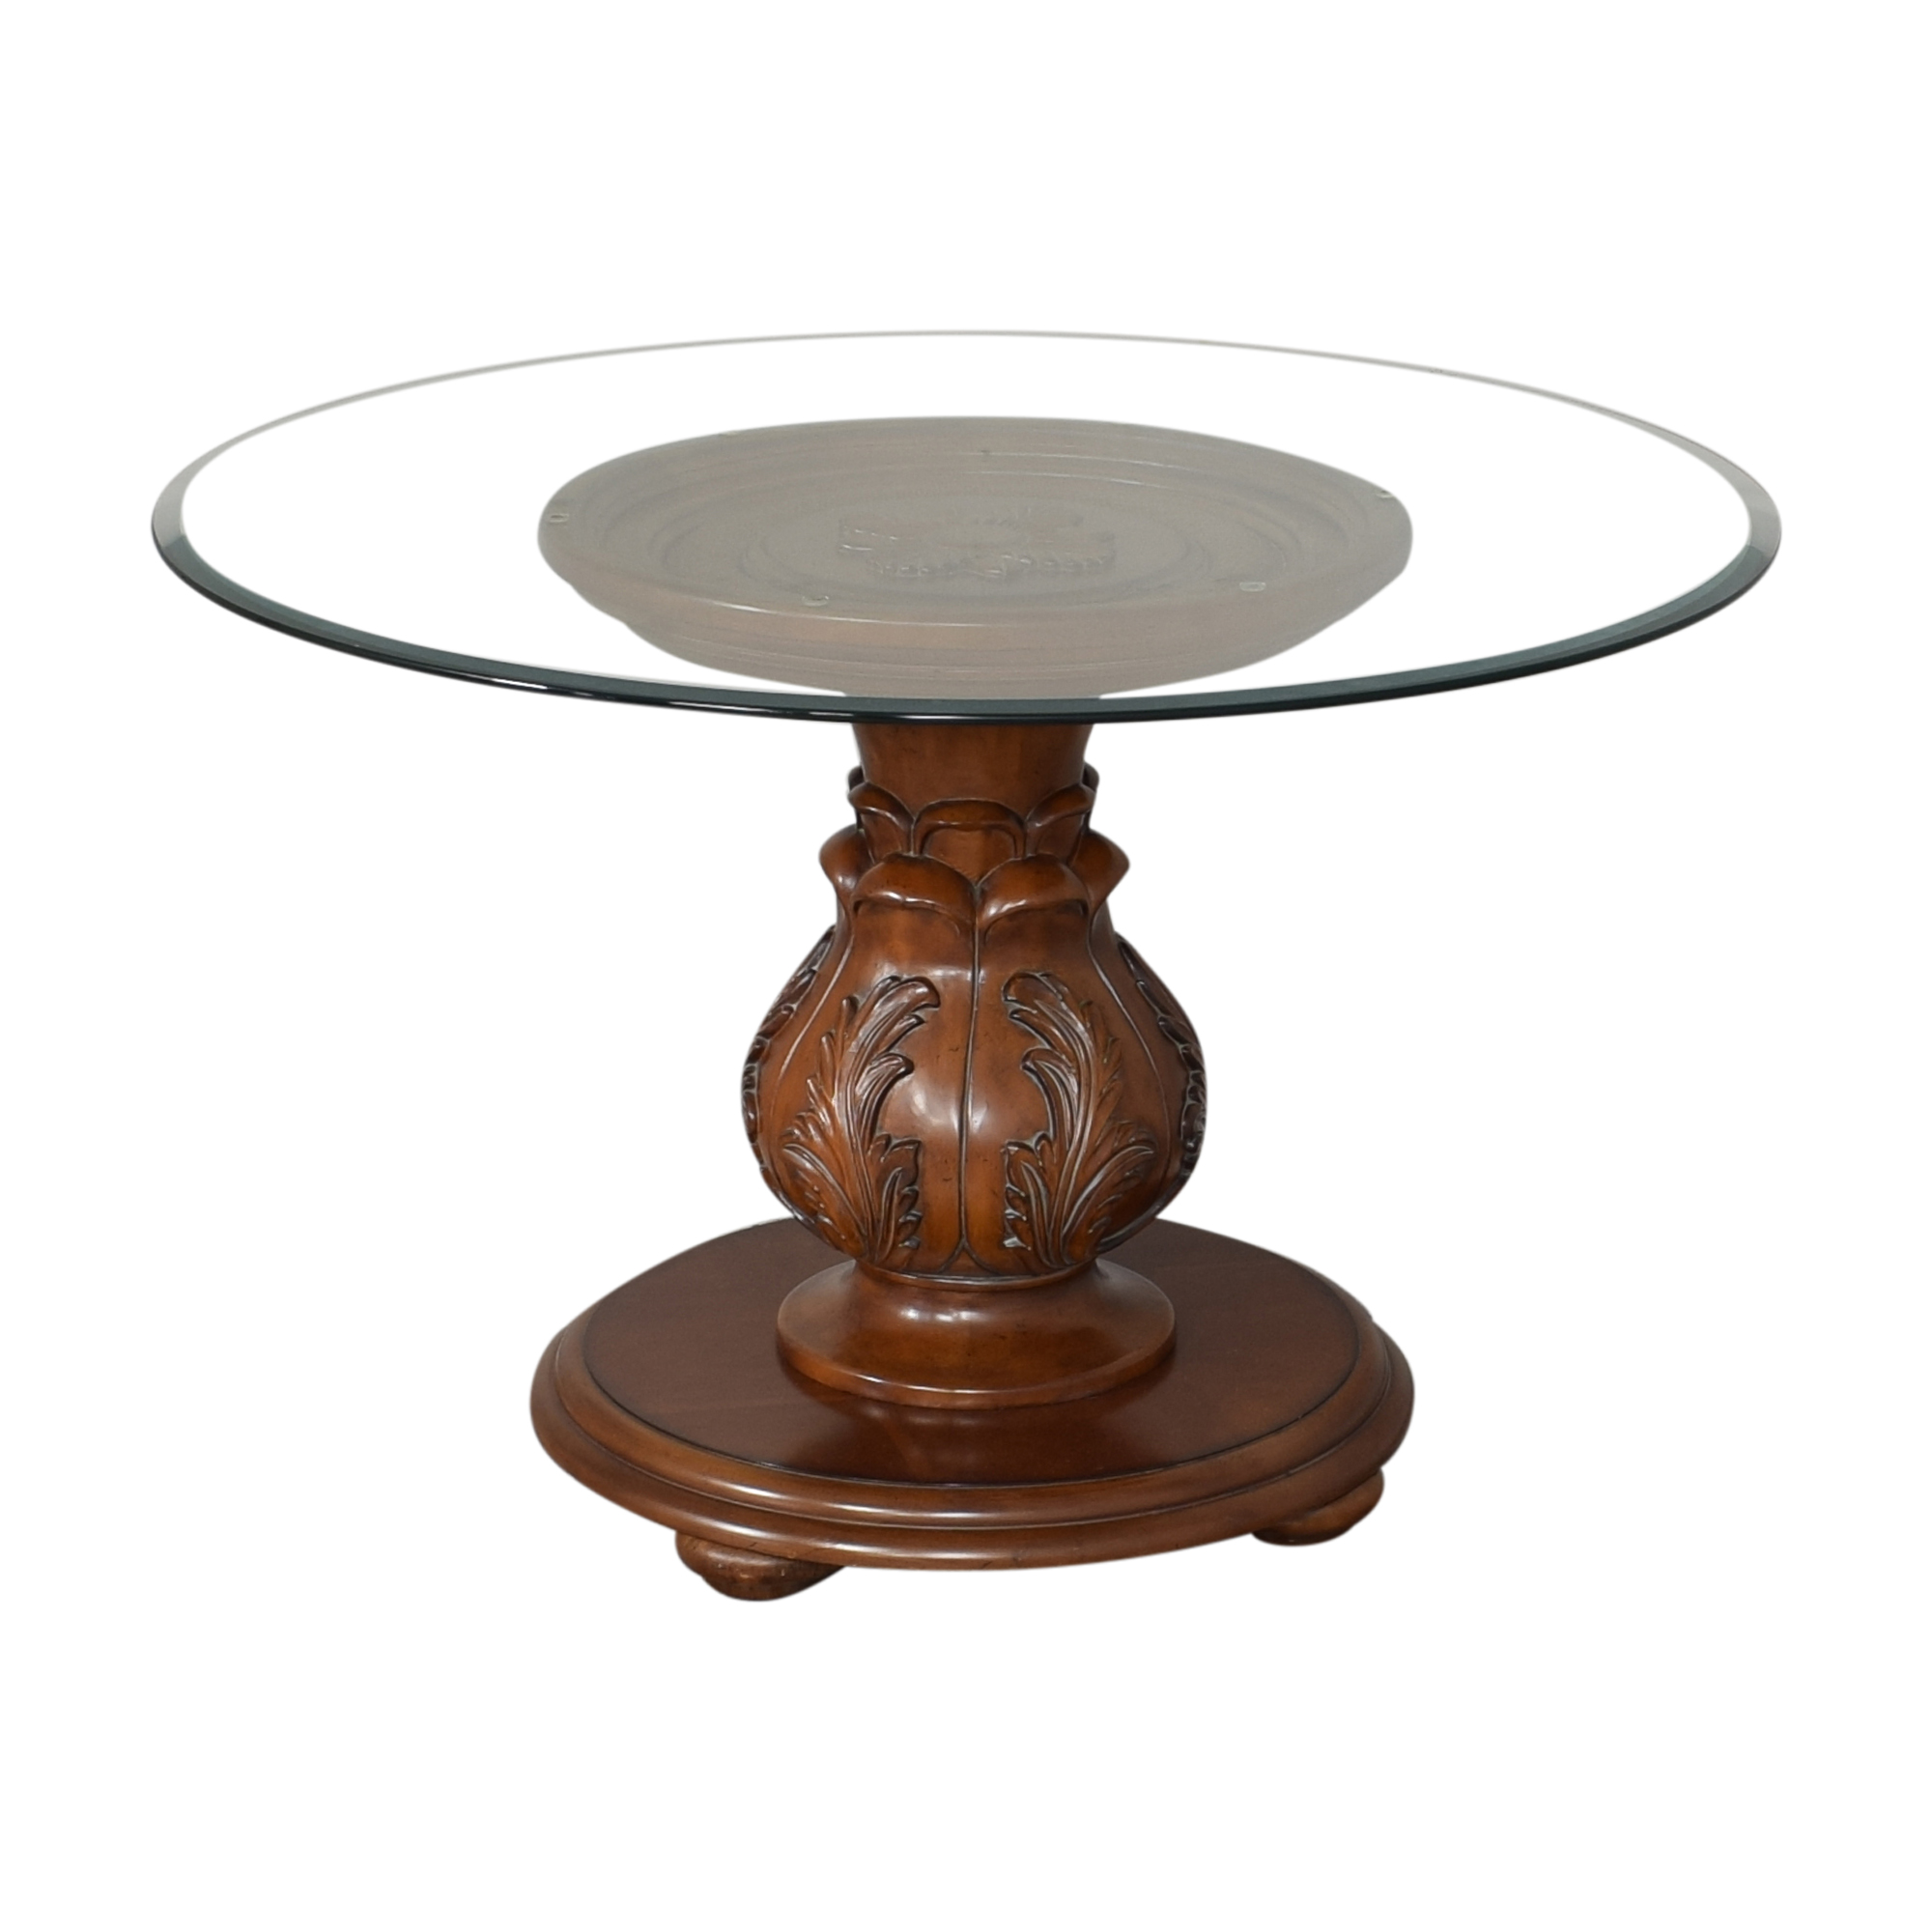 Broyhill Furniture Broyhill Furniture Sunset Pointe Pedestal Table Brown